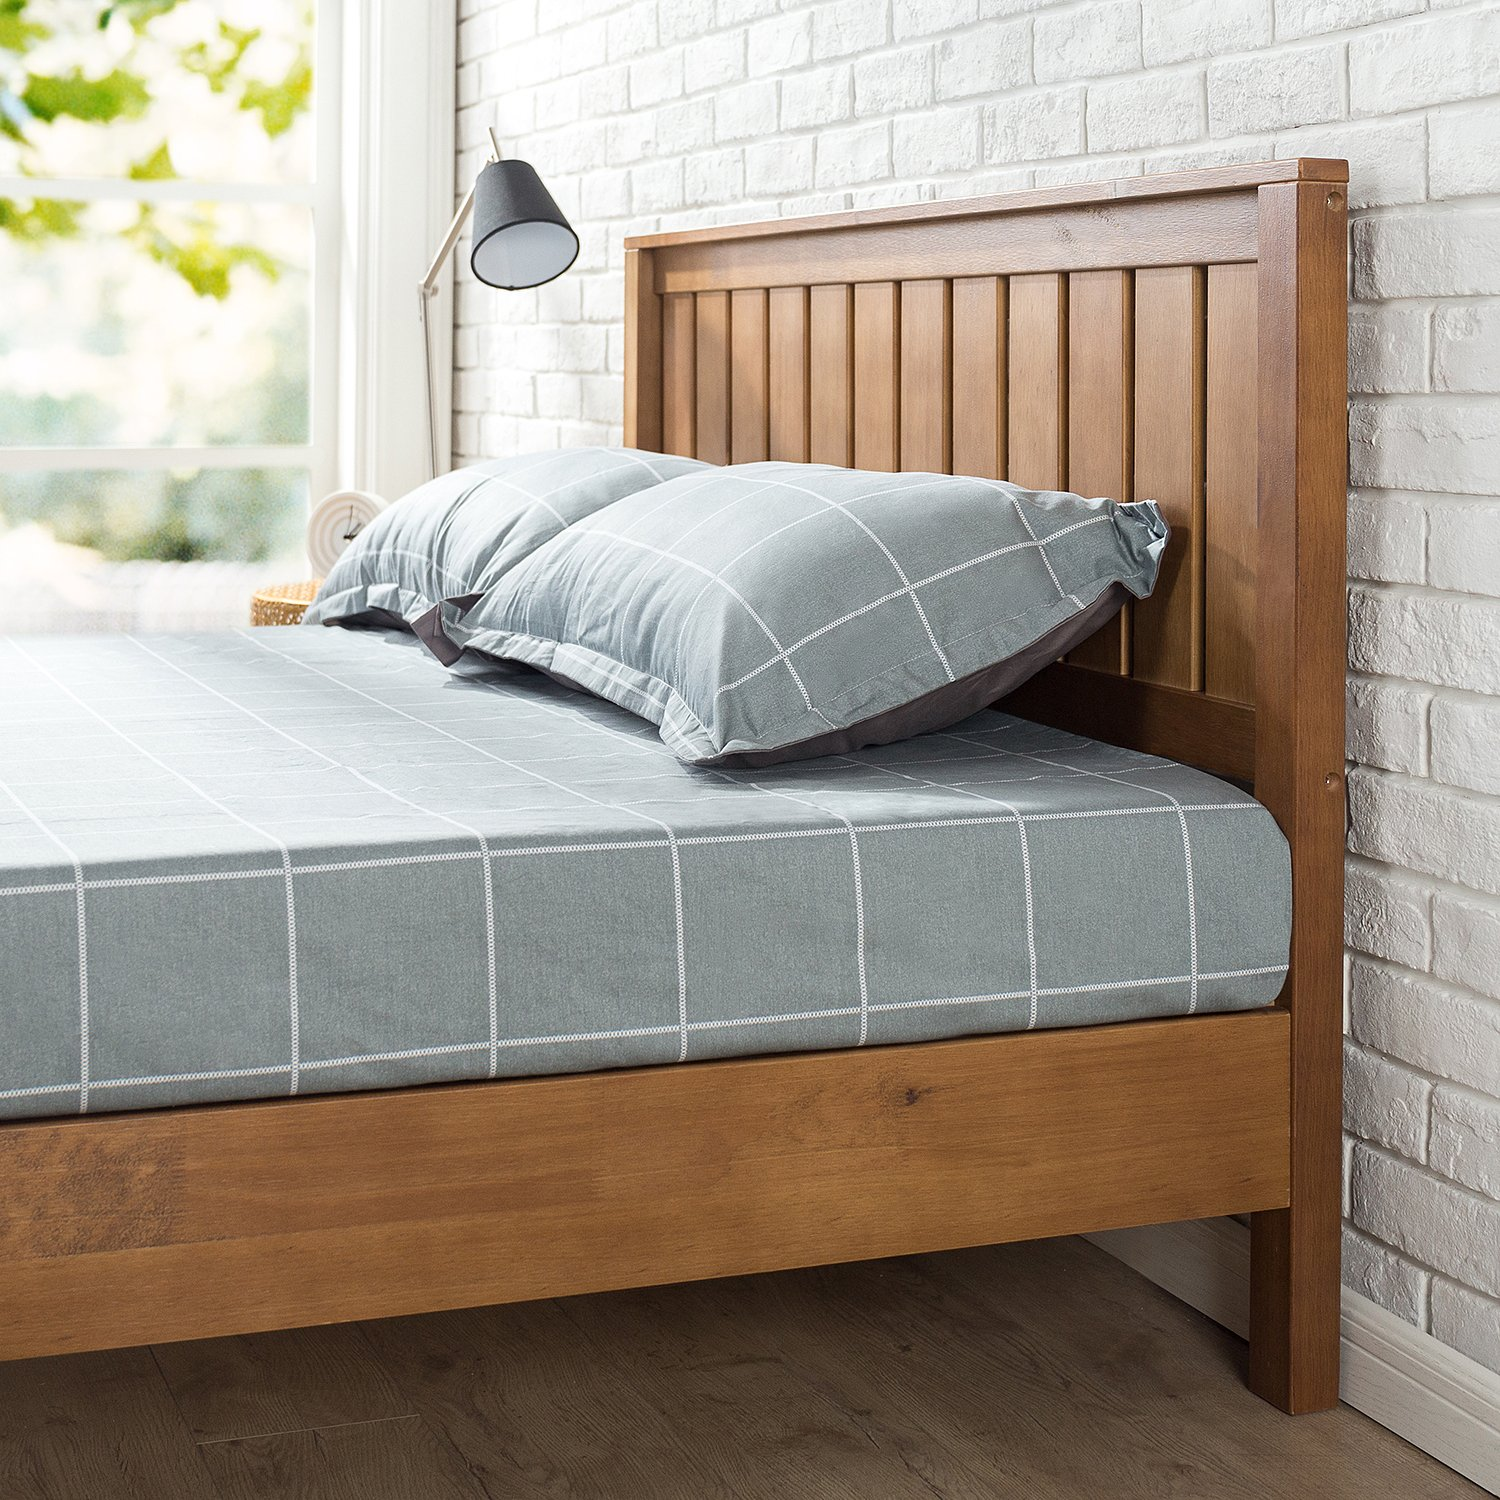 Zinus 12 Inch Deluxe Wood Platform Bed with Headboard / No Box Spring Needed / Wood Slat Support / Rustic Pine Finish, Twin by Zinus (Image #4)